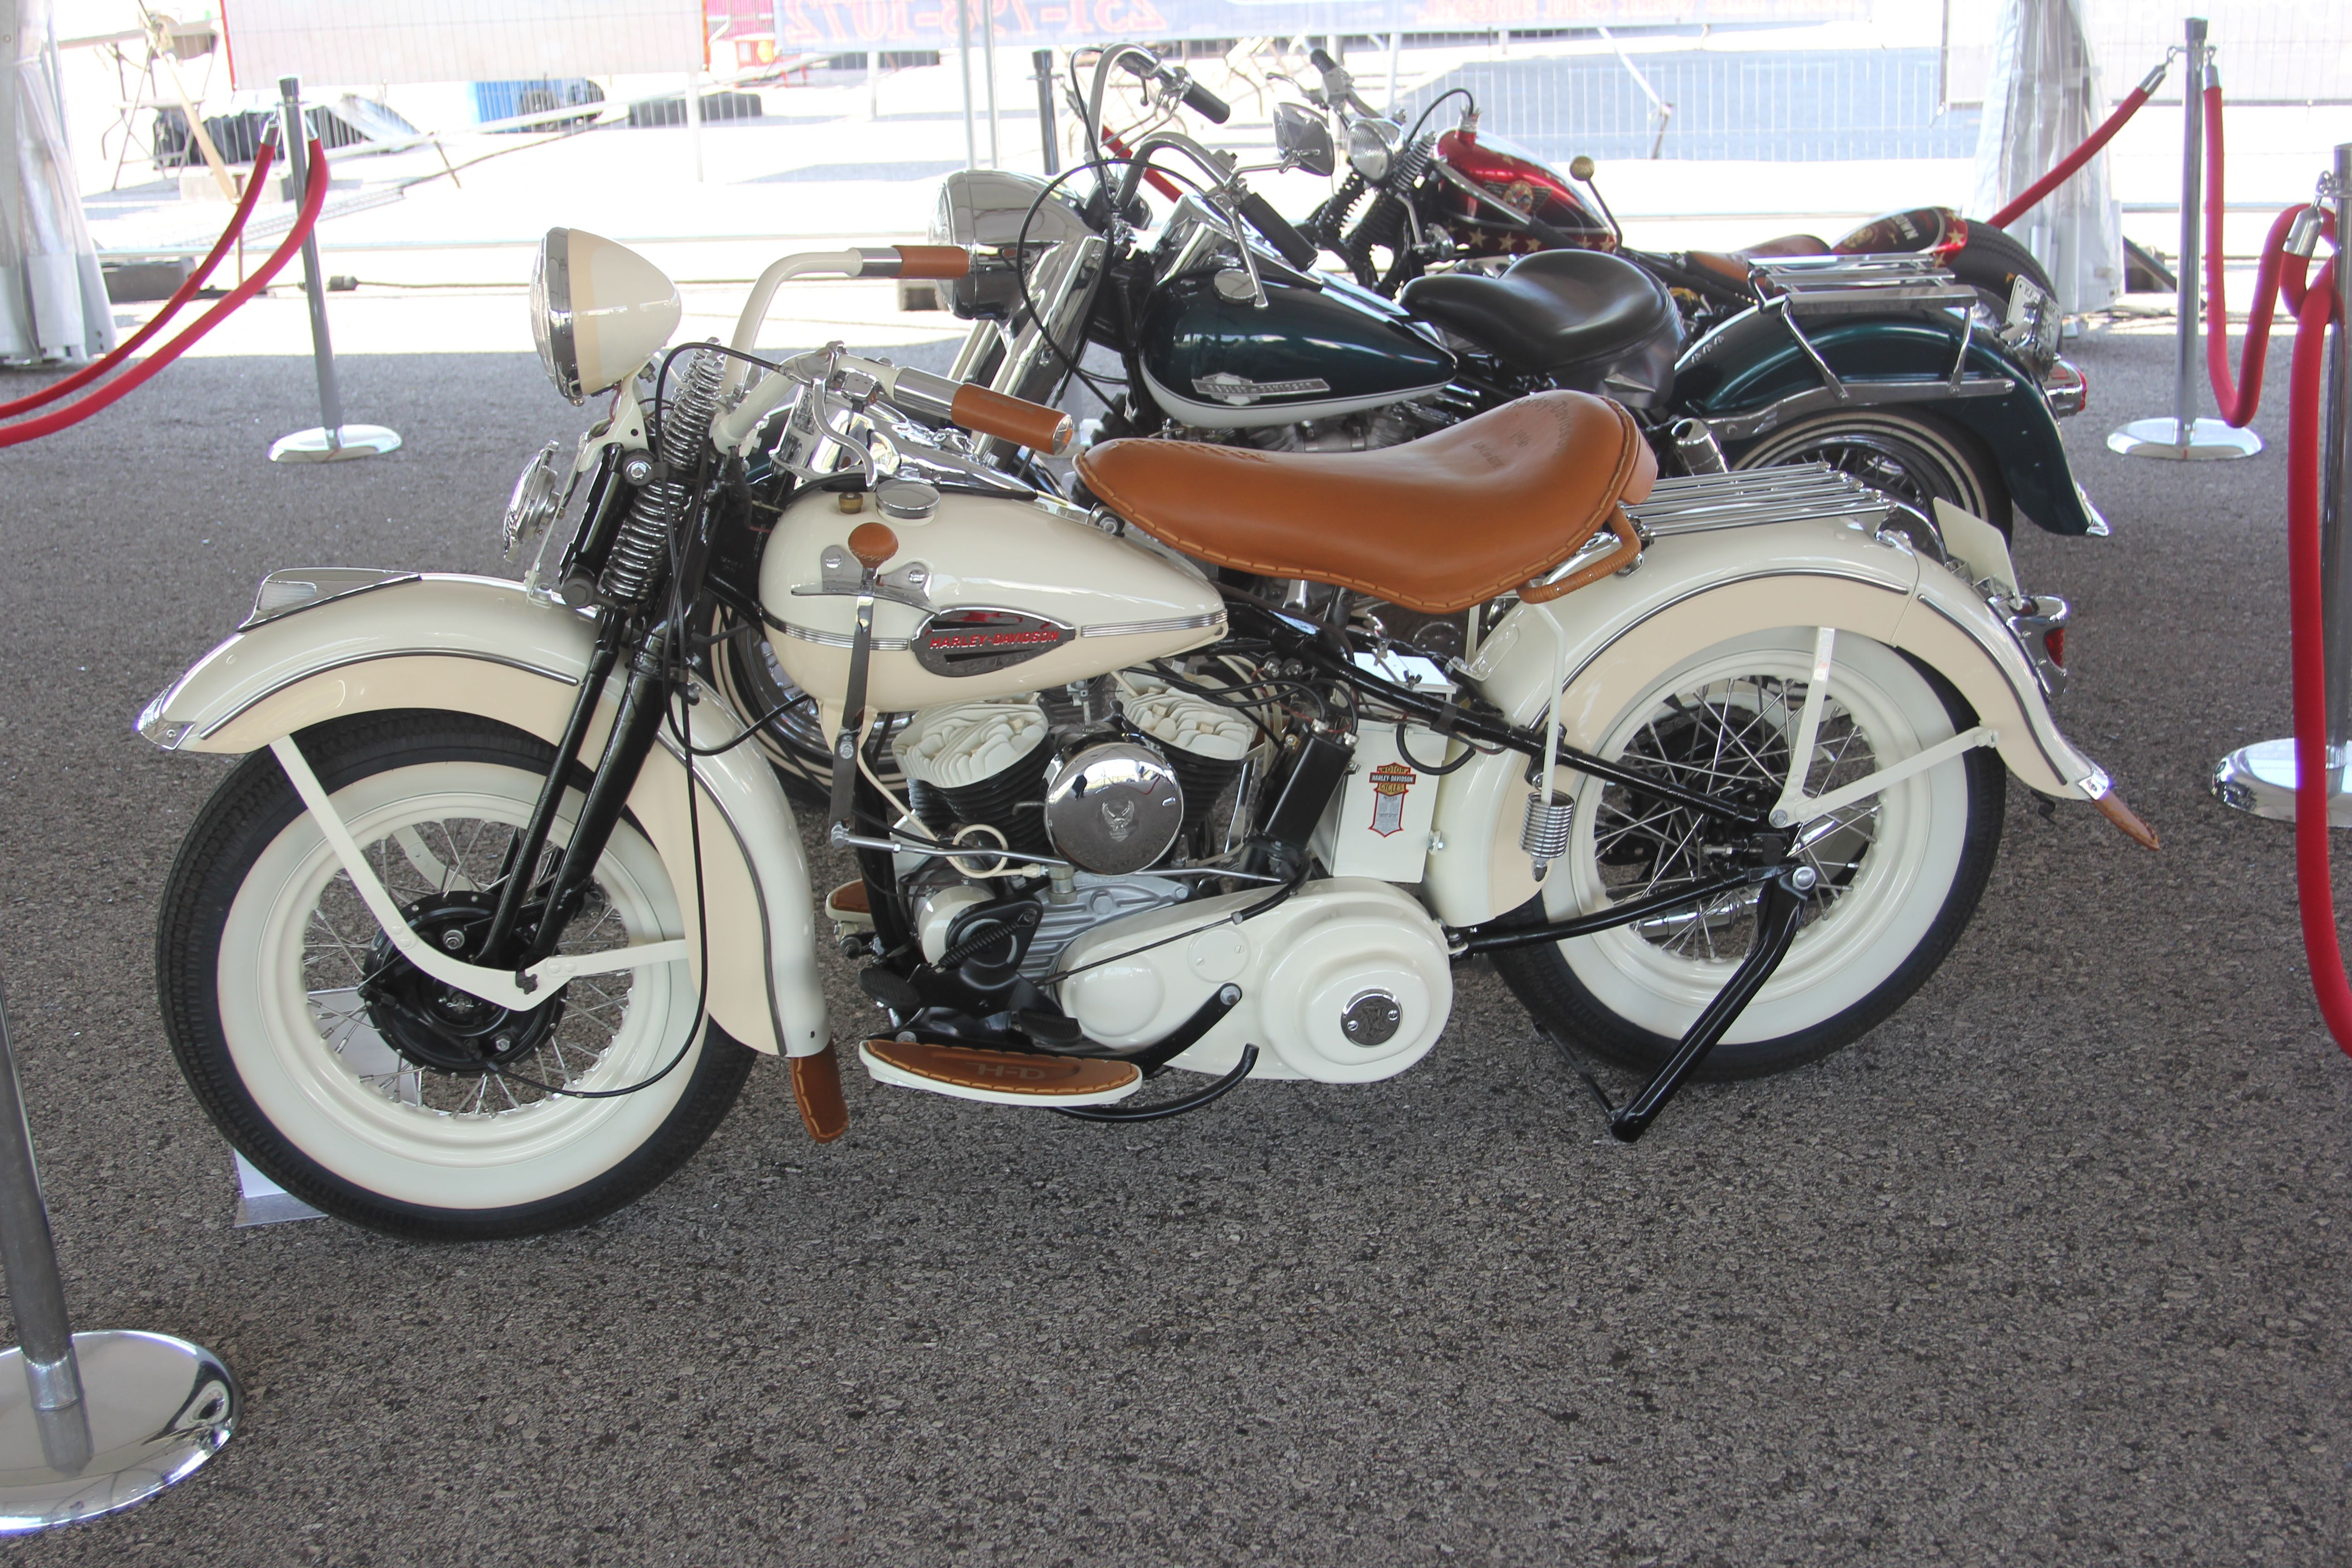 1946 harley flat head 45 redone by paul anderson will be featured at harley davidson celebration